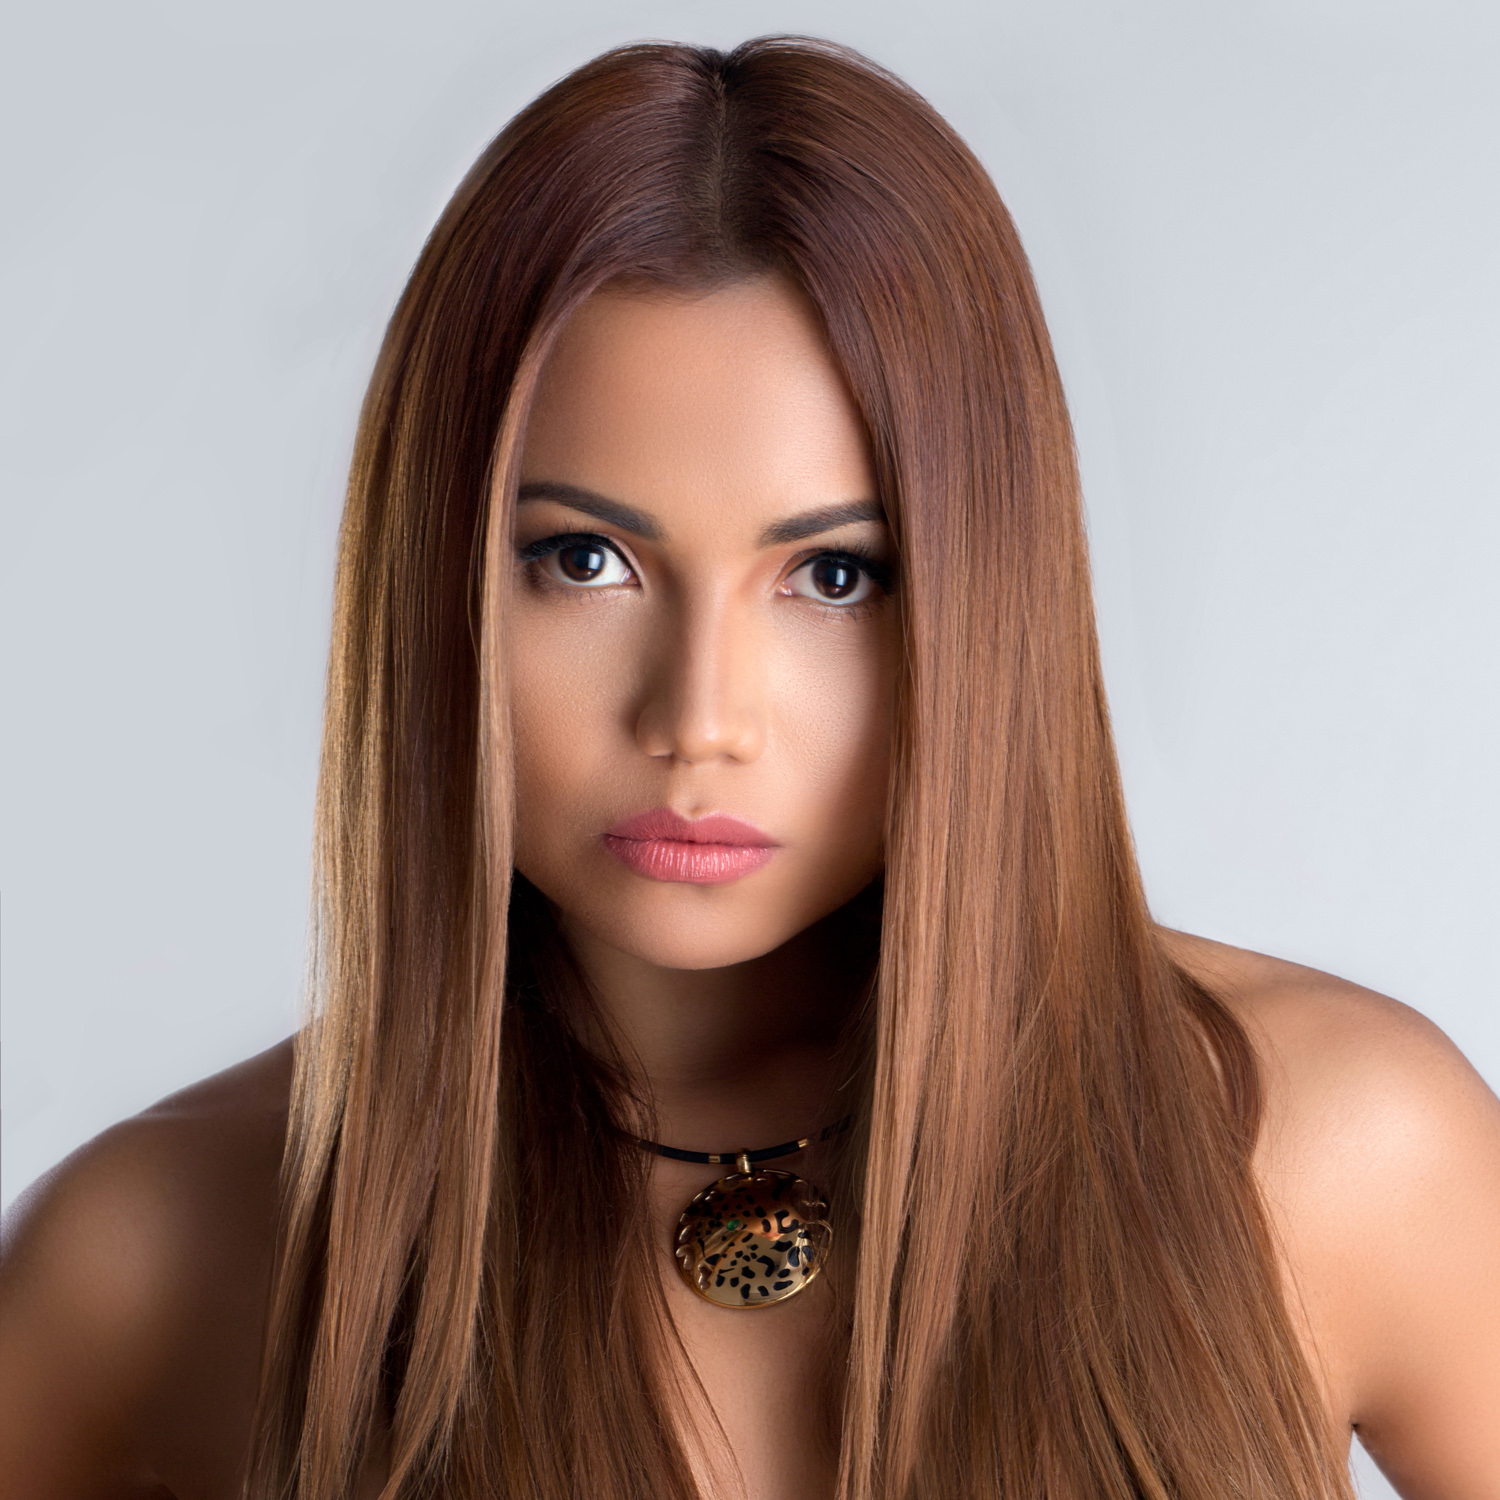 hair style barber Bergenfield Tenafly color specialist beauty salon makeup